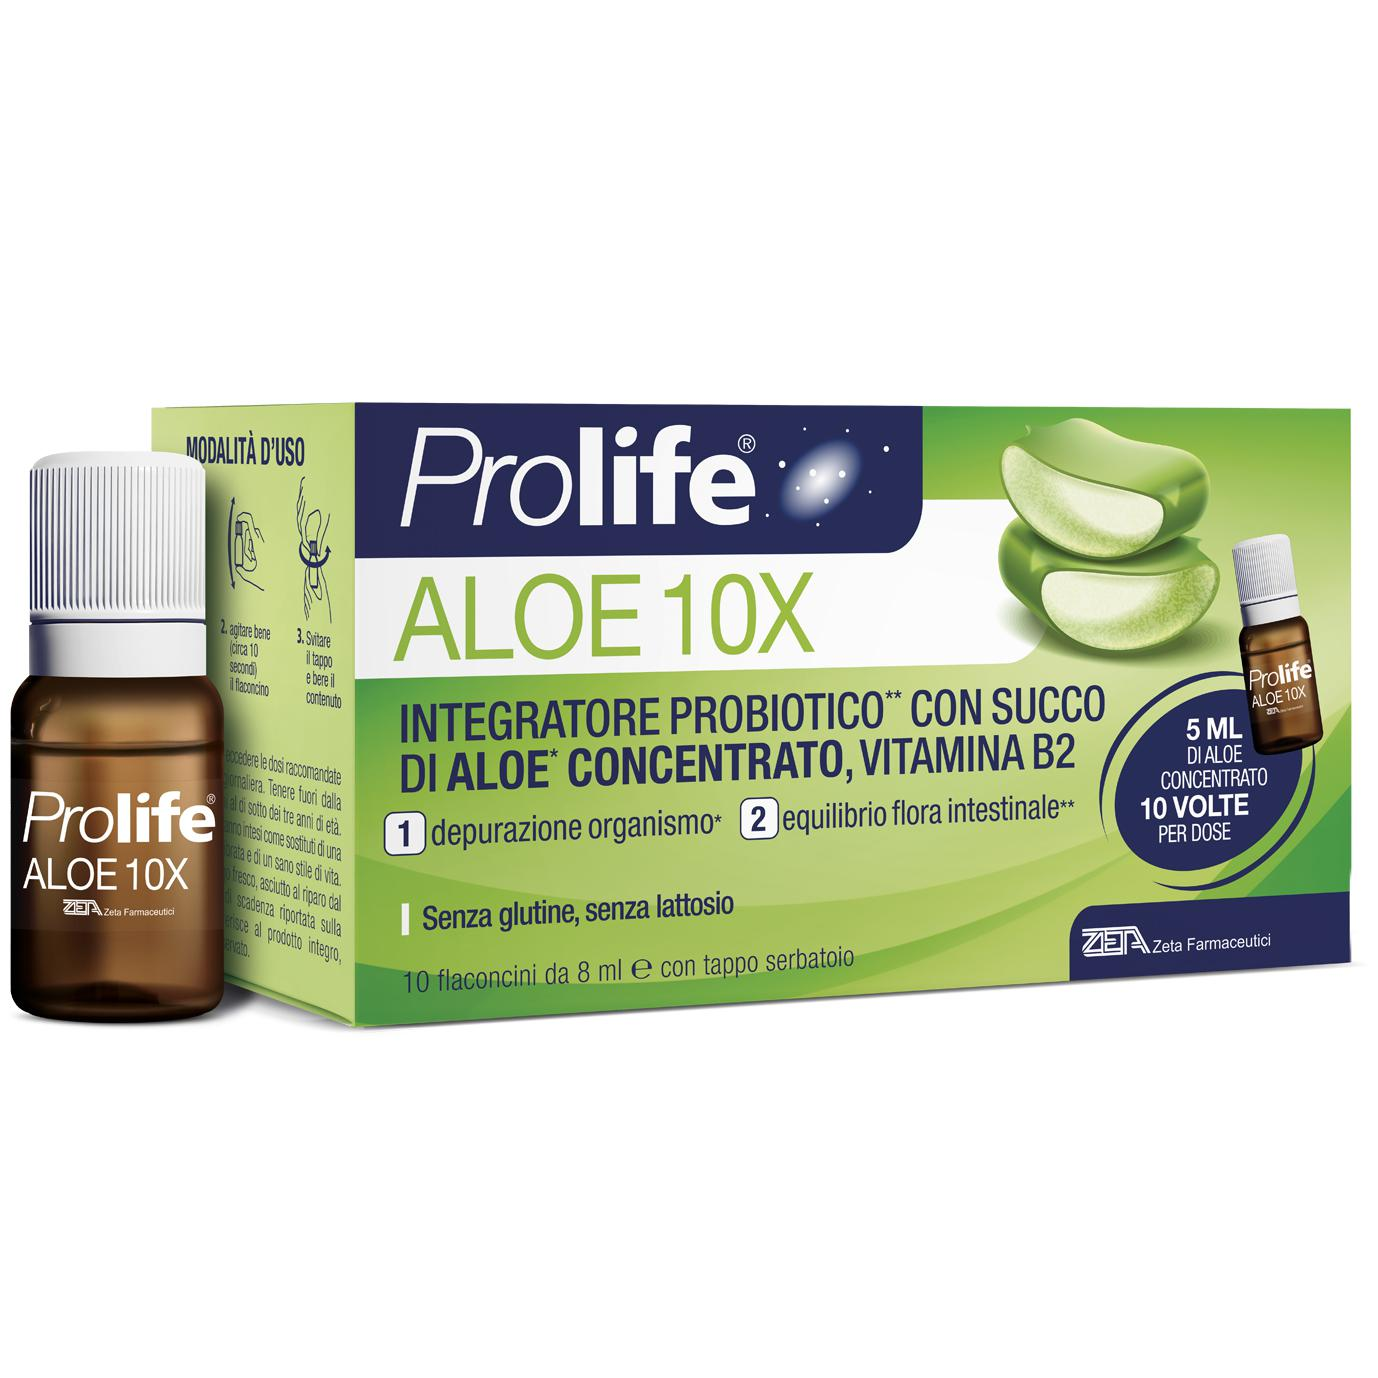 Prolife Aloe 10X